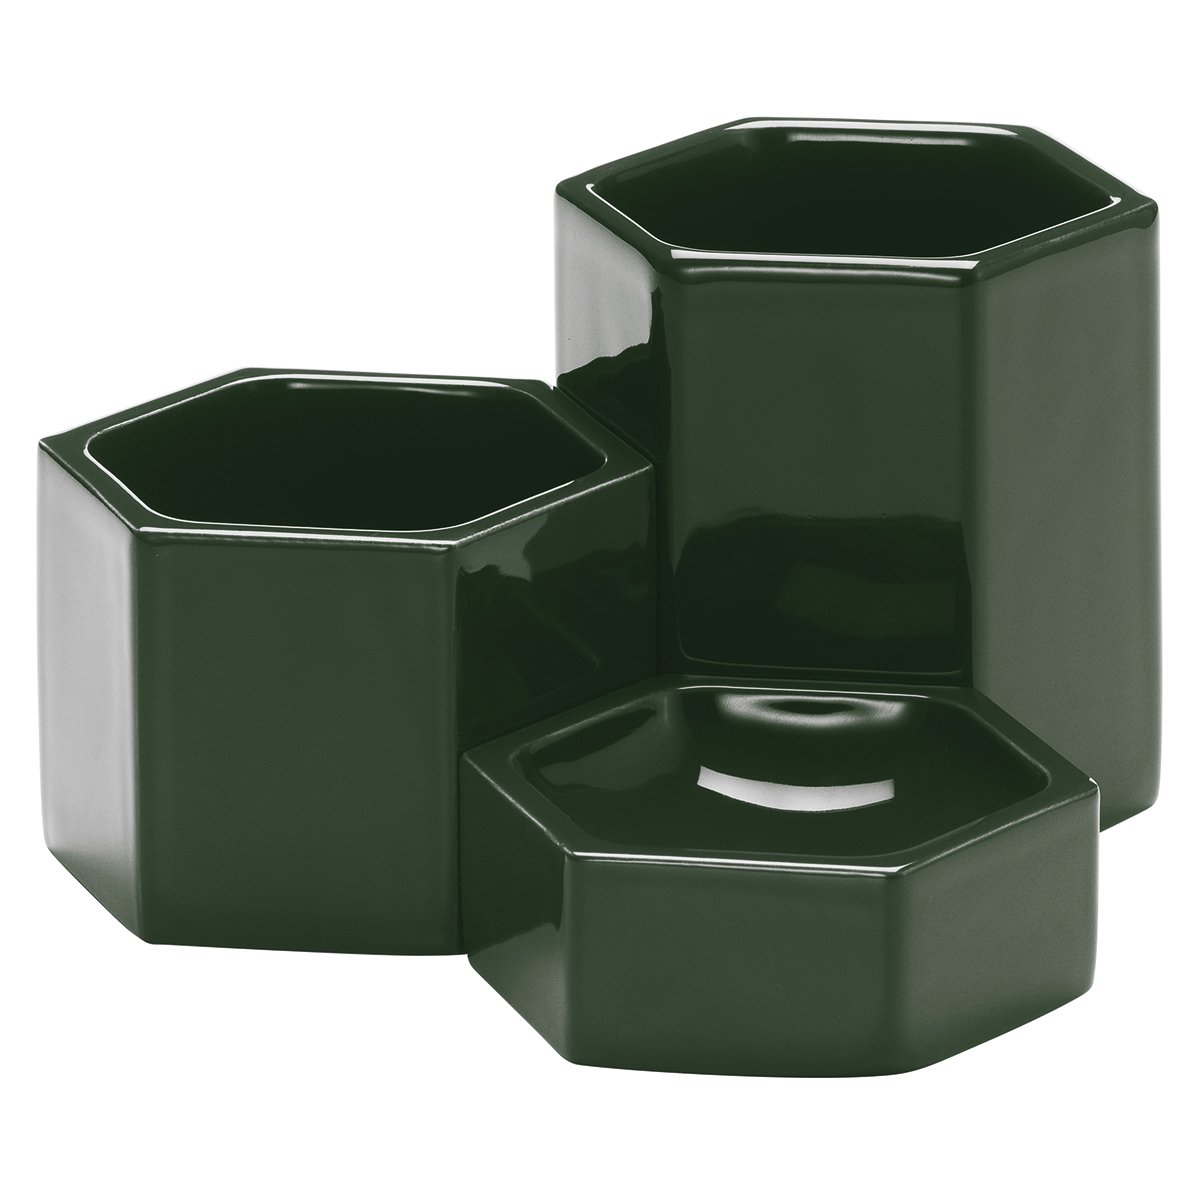 Vitra Hexagonal Containers - Dark Green